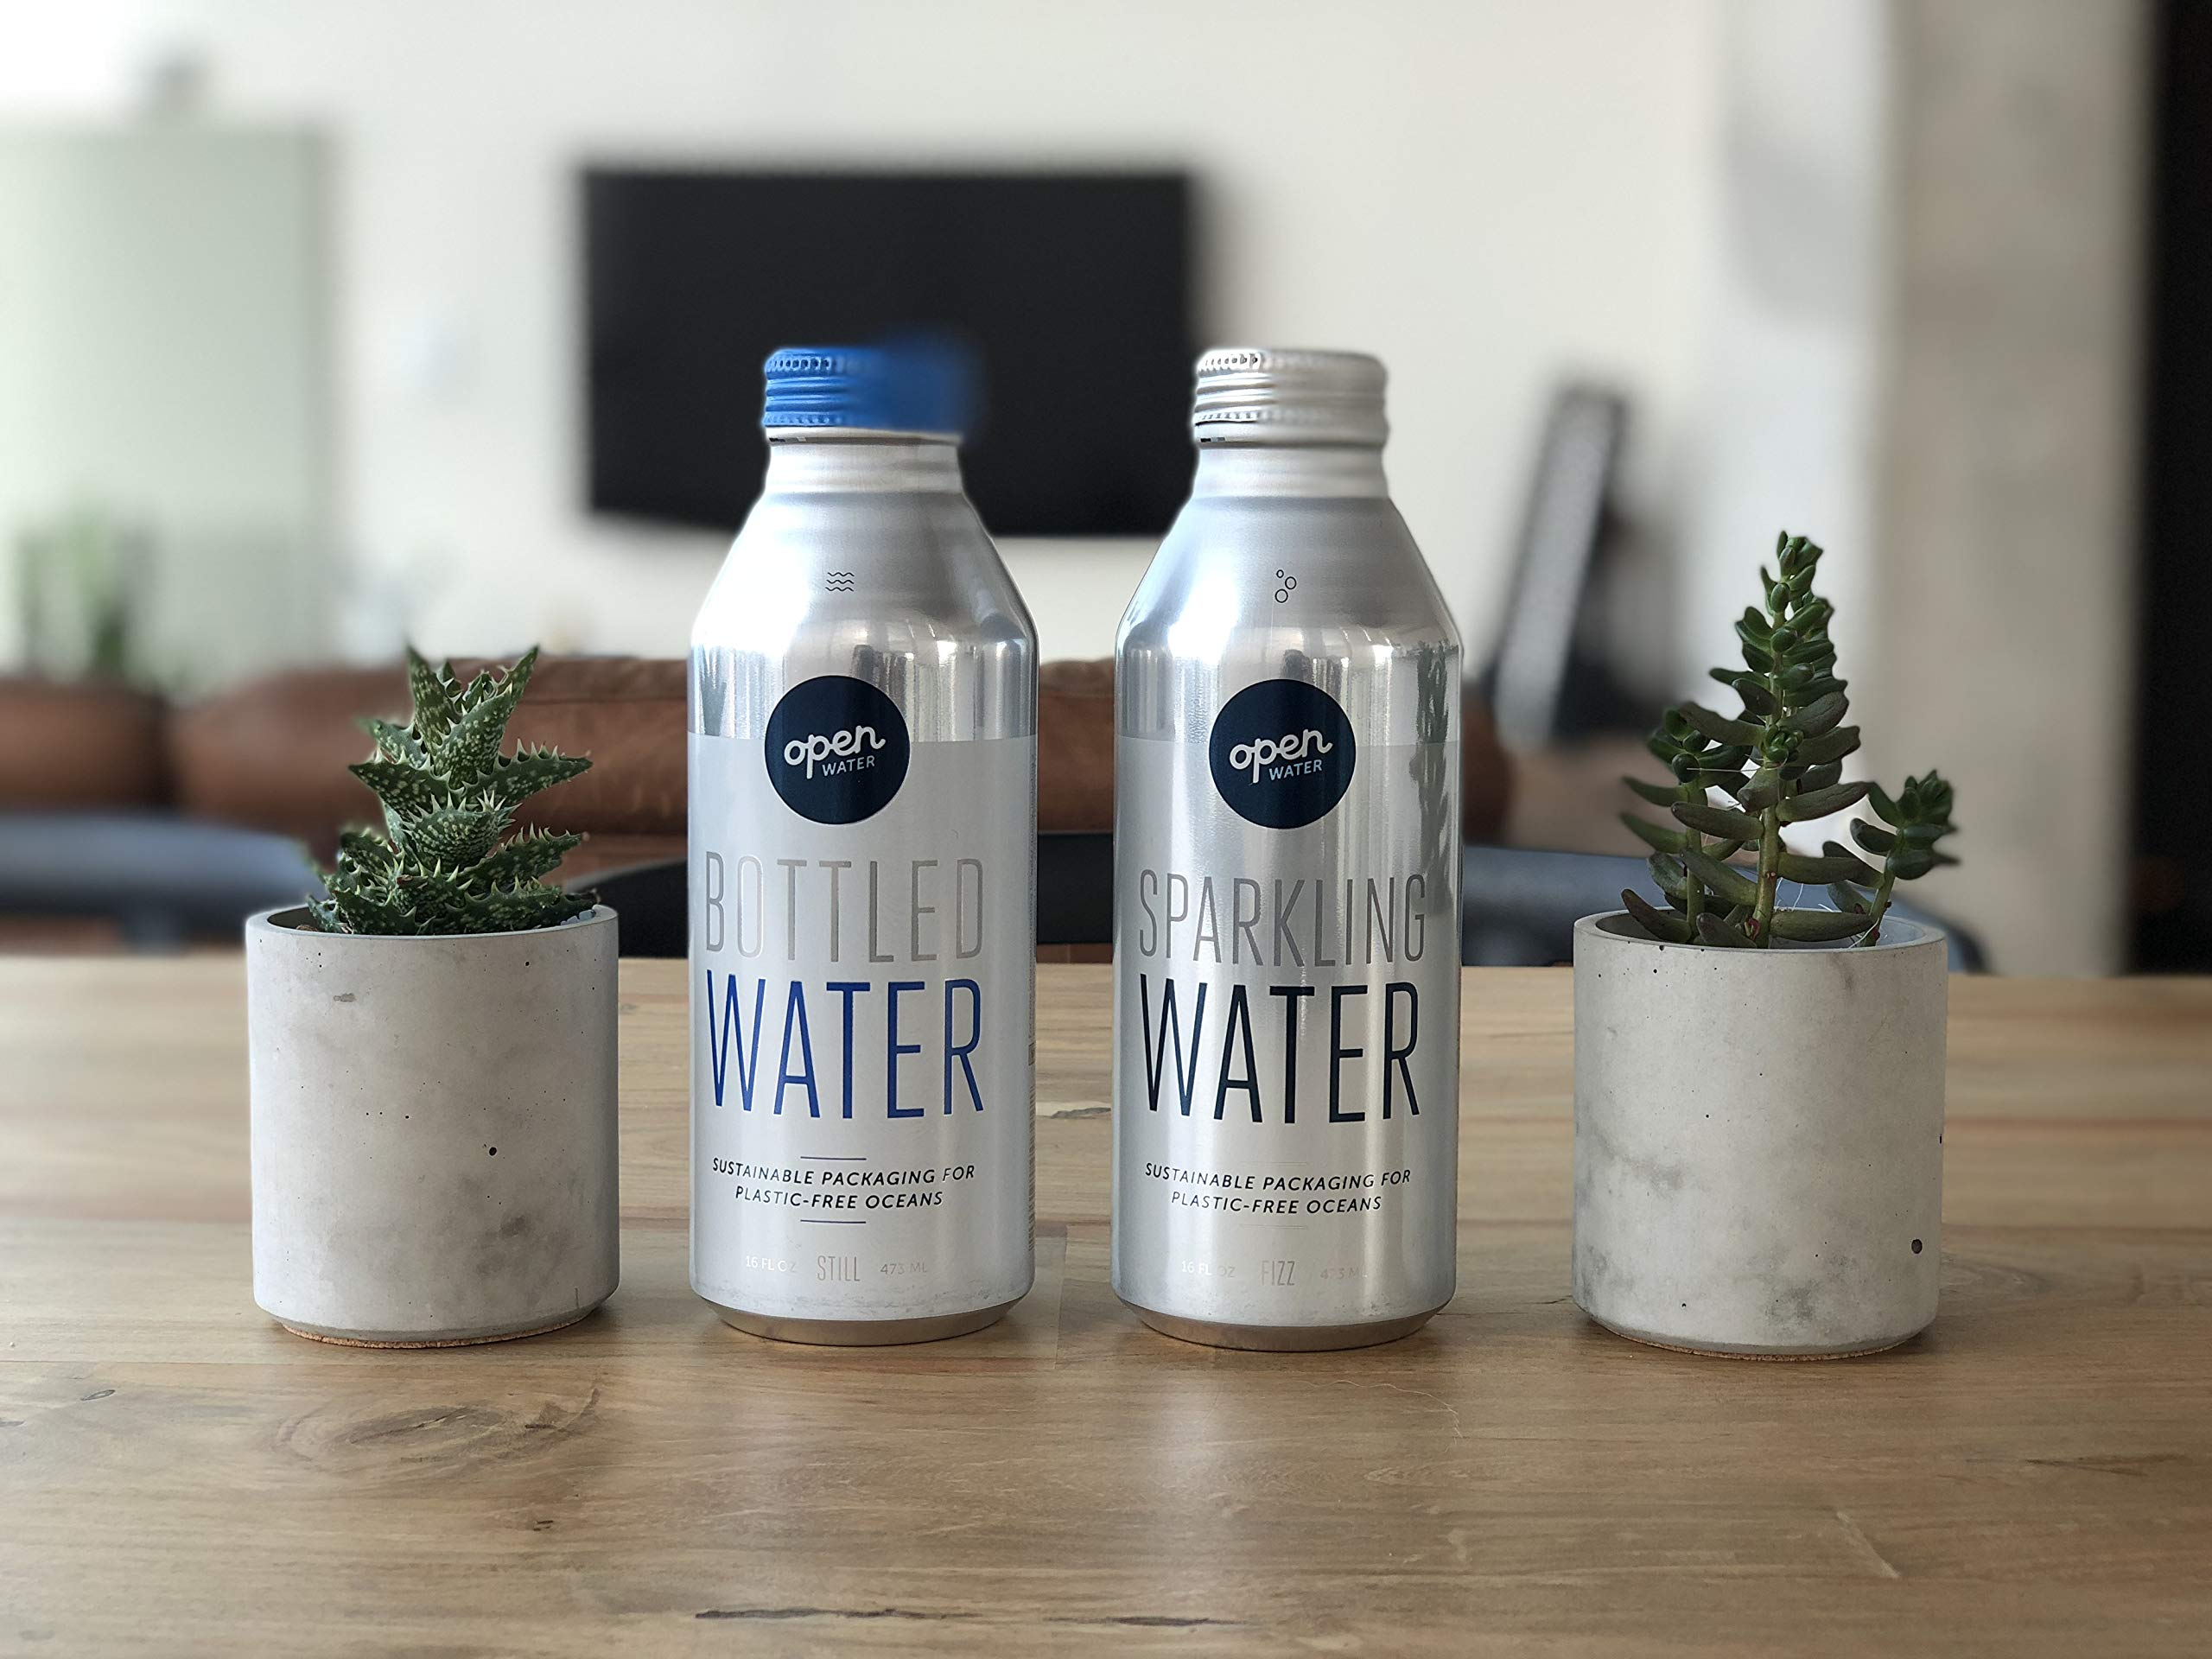 Open Water - Sparkling Bottled Drinking Water in 16-ounce Aluminum Bottles (2 cases of 12 units, 24 bottles total - Sparkling Water)